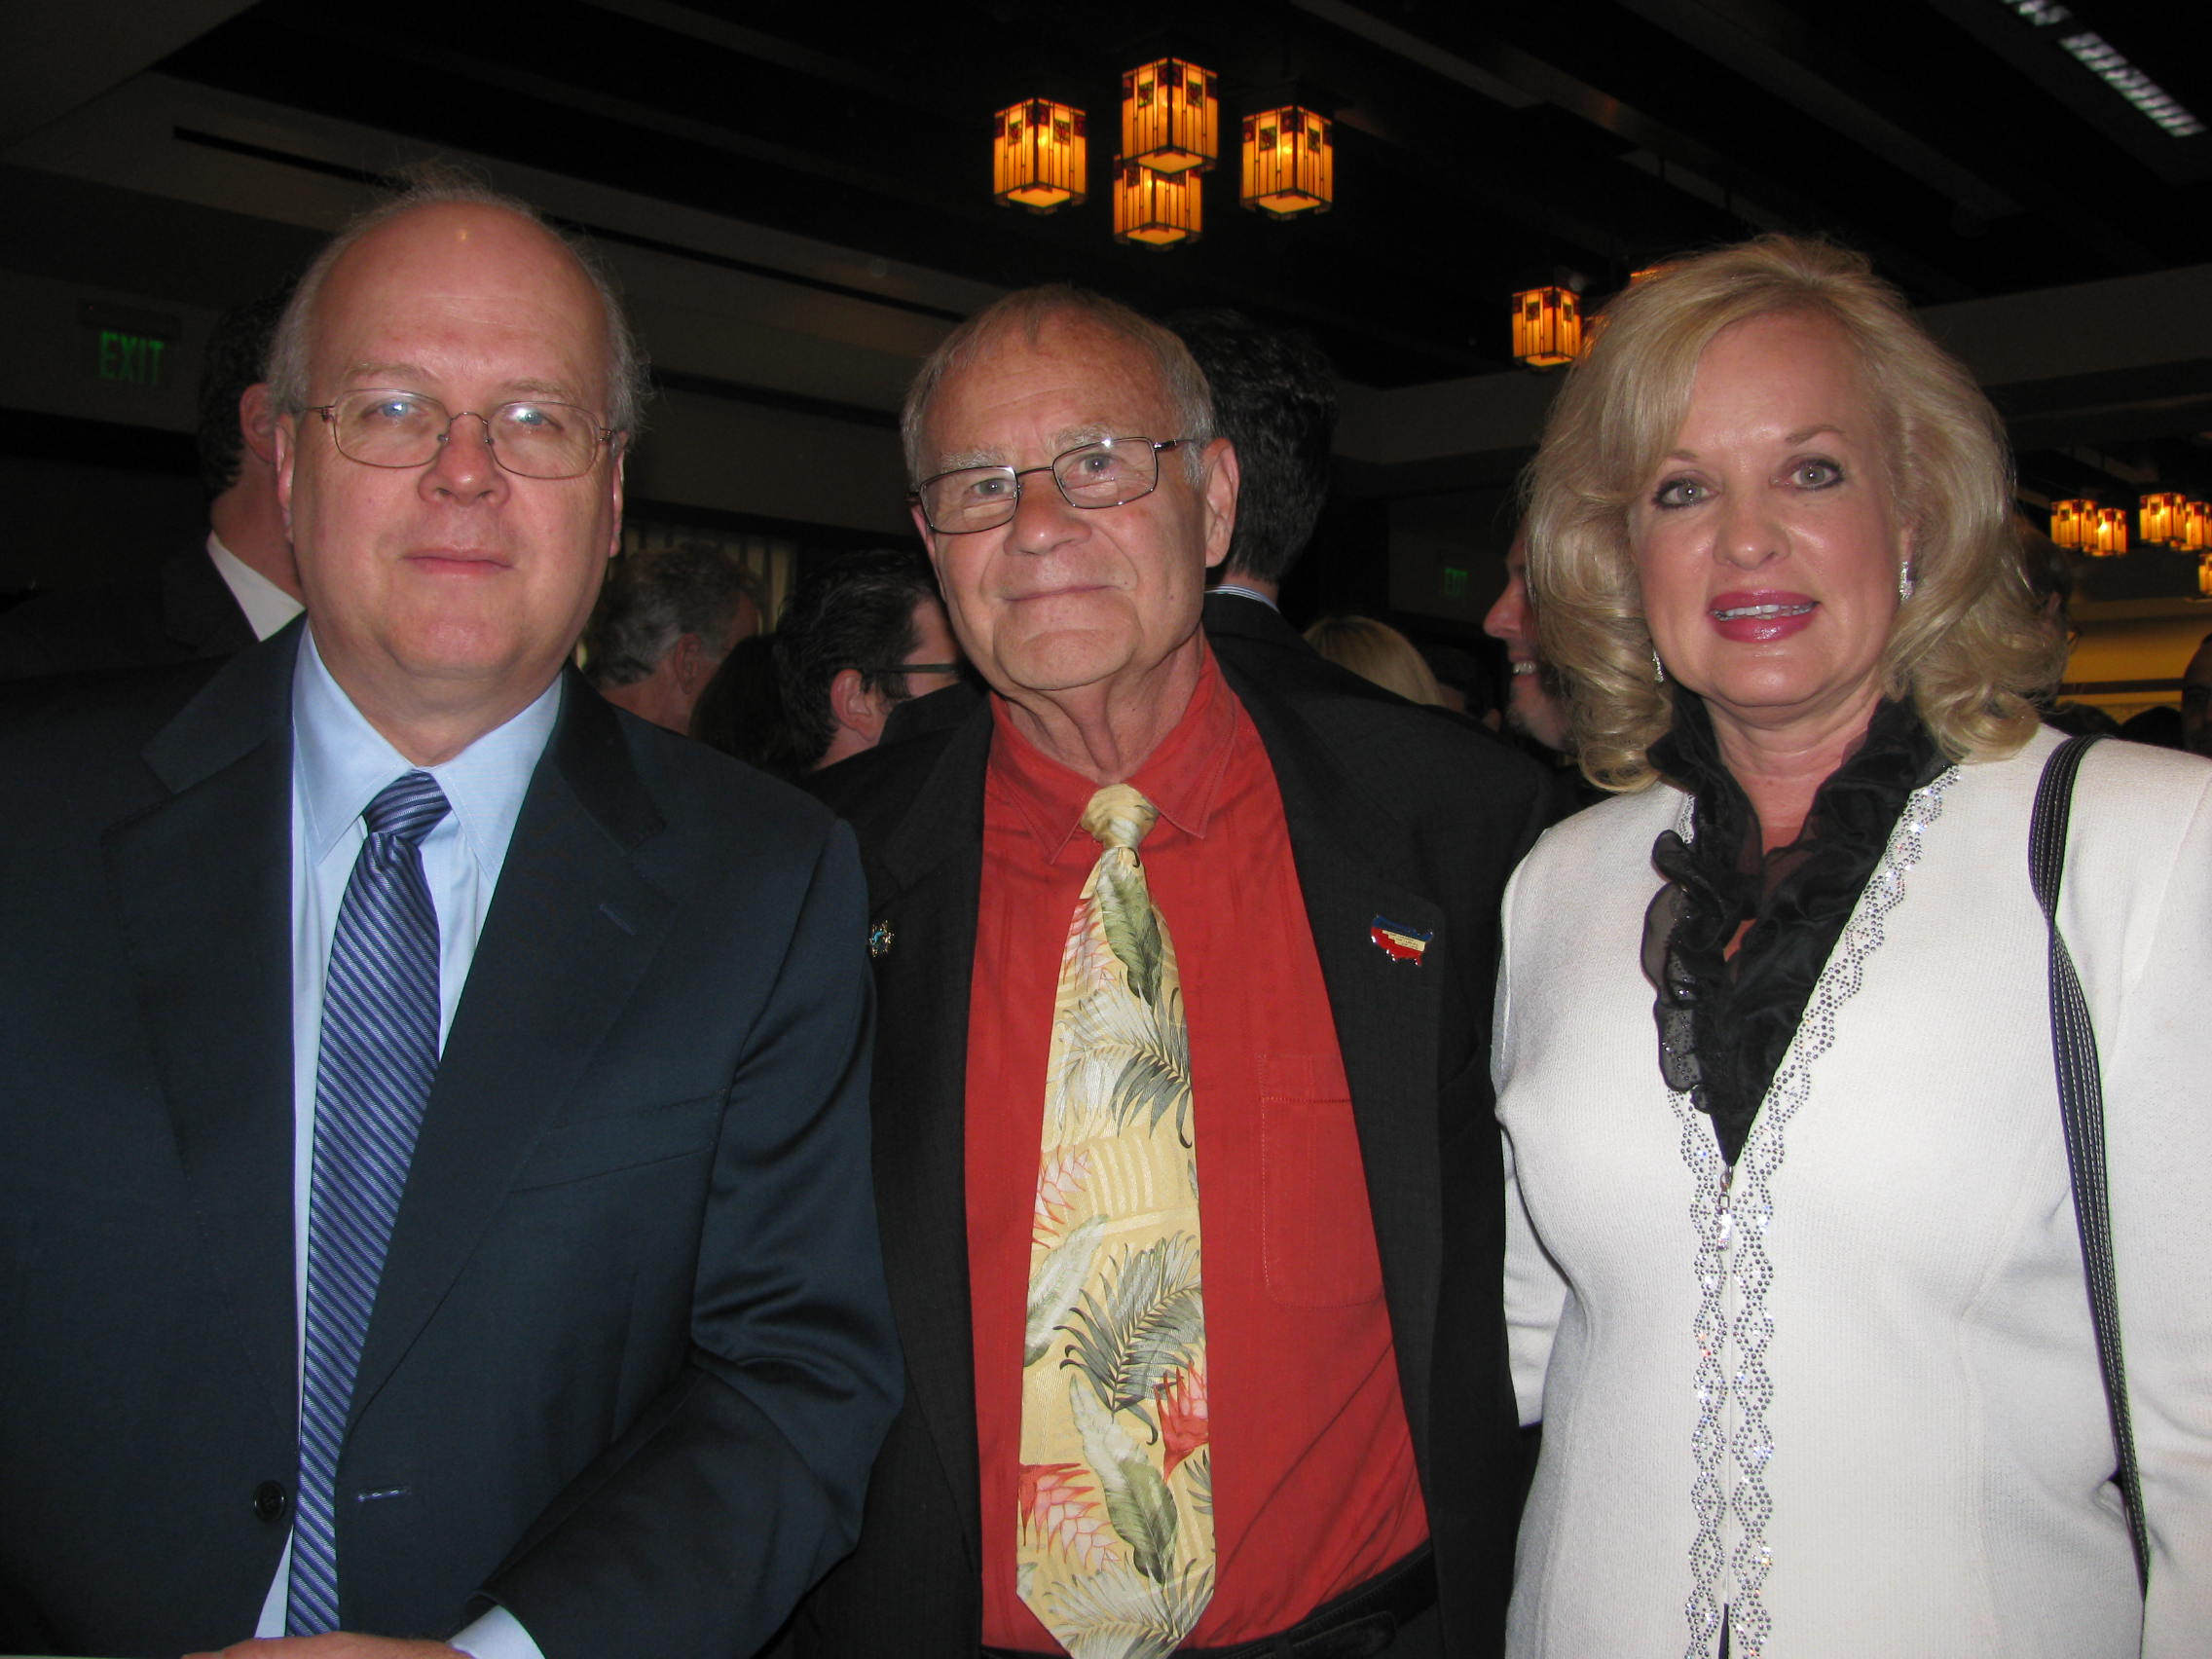 The architect Karl Rove with Nordskog's